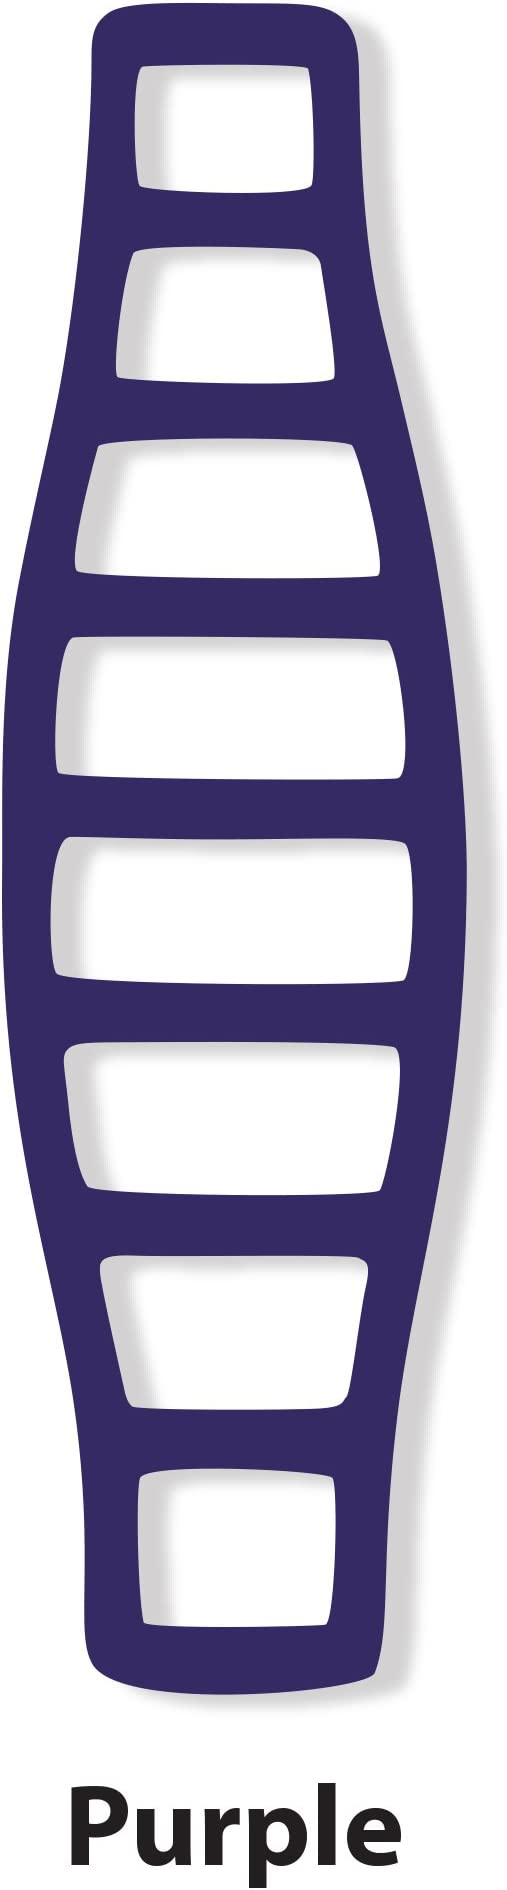 LocoModiv Unisex Silicone Shoulder Strap Pad #251 Purple One Size